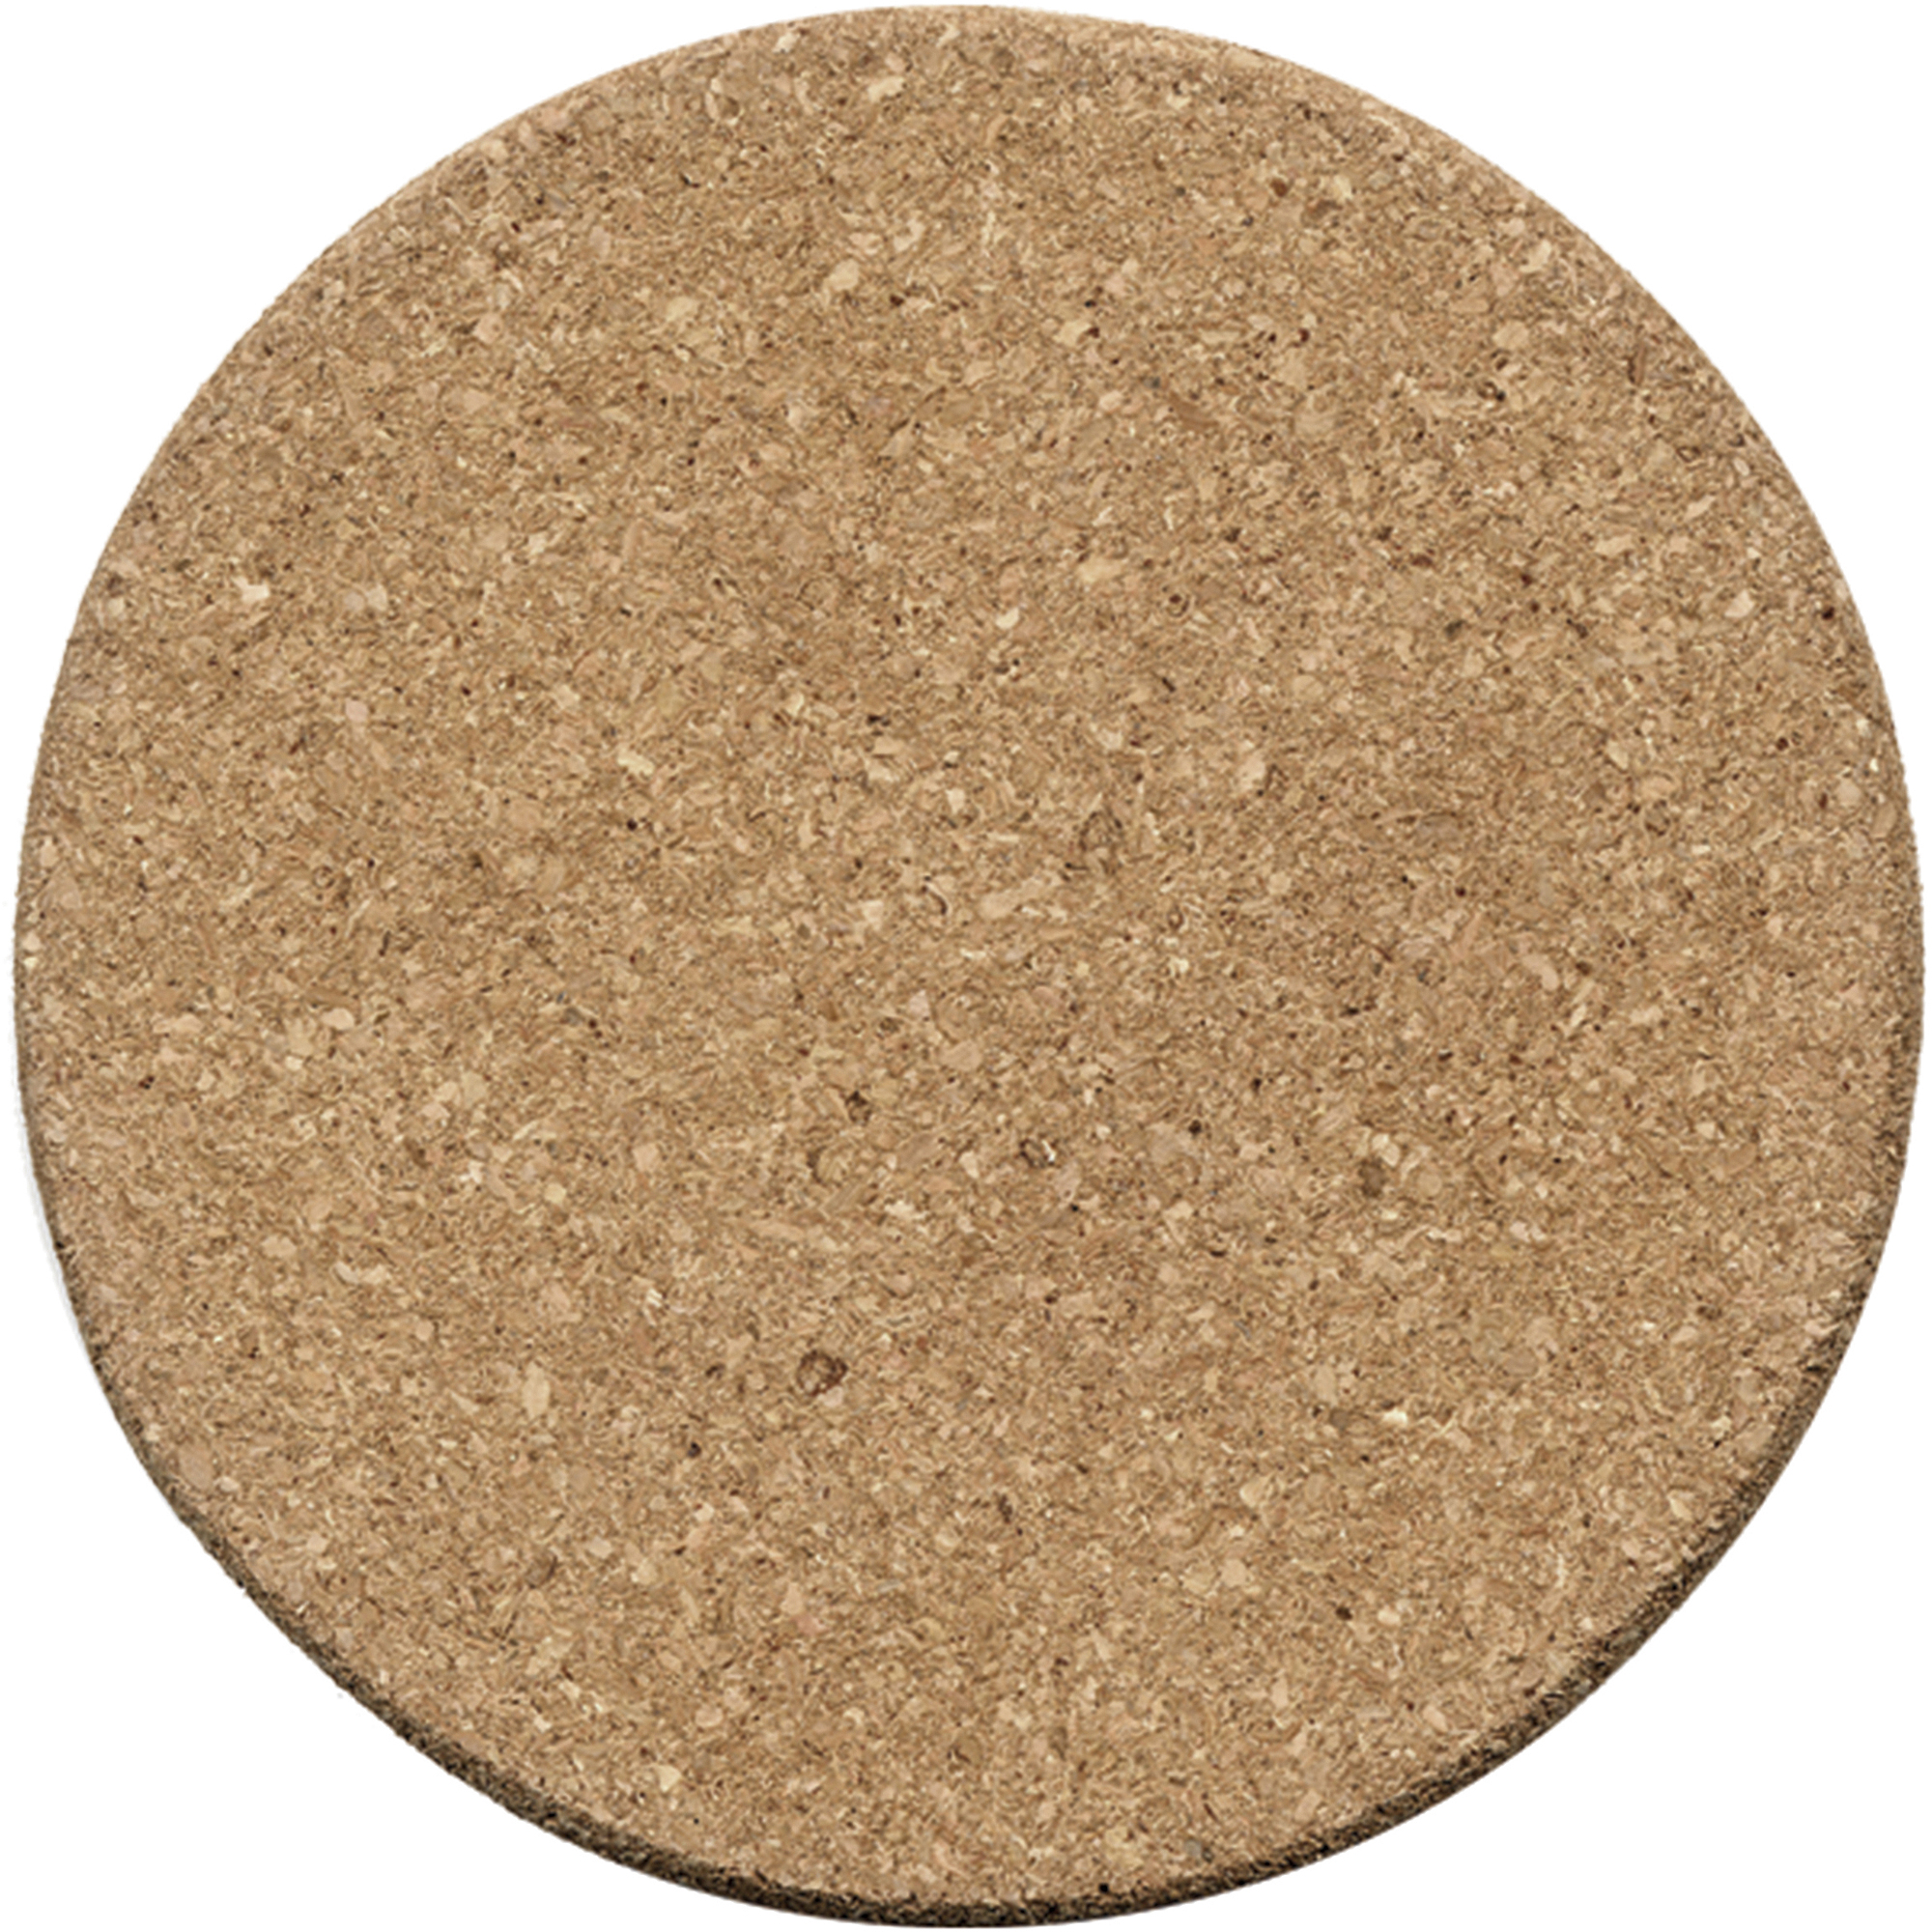 Thirstystone Cork Drink Coasters Set, Natural S-6